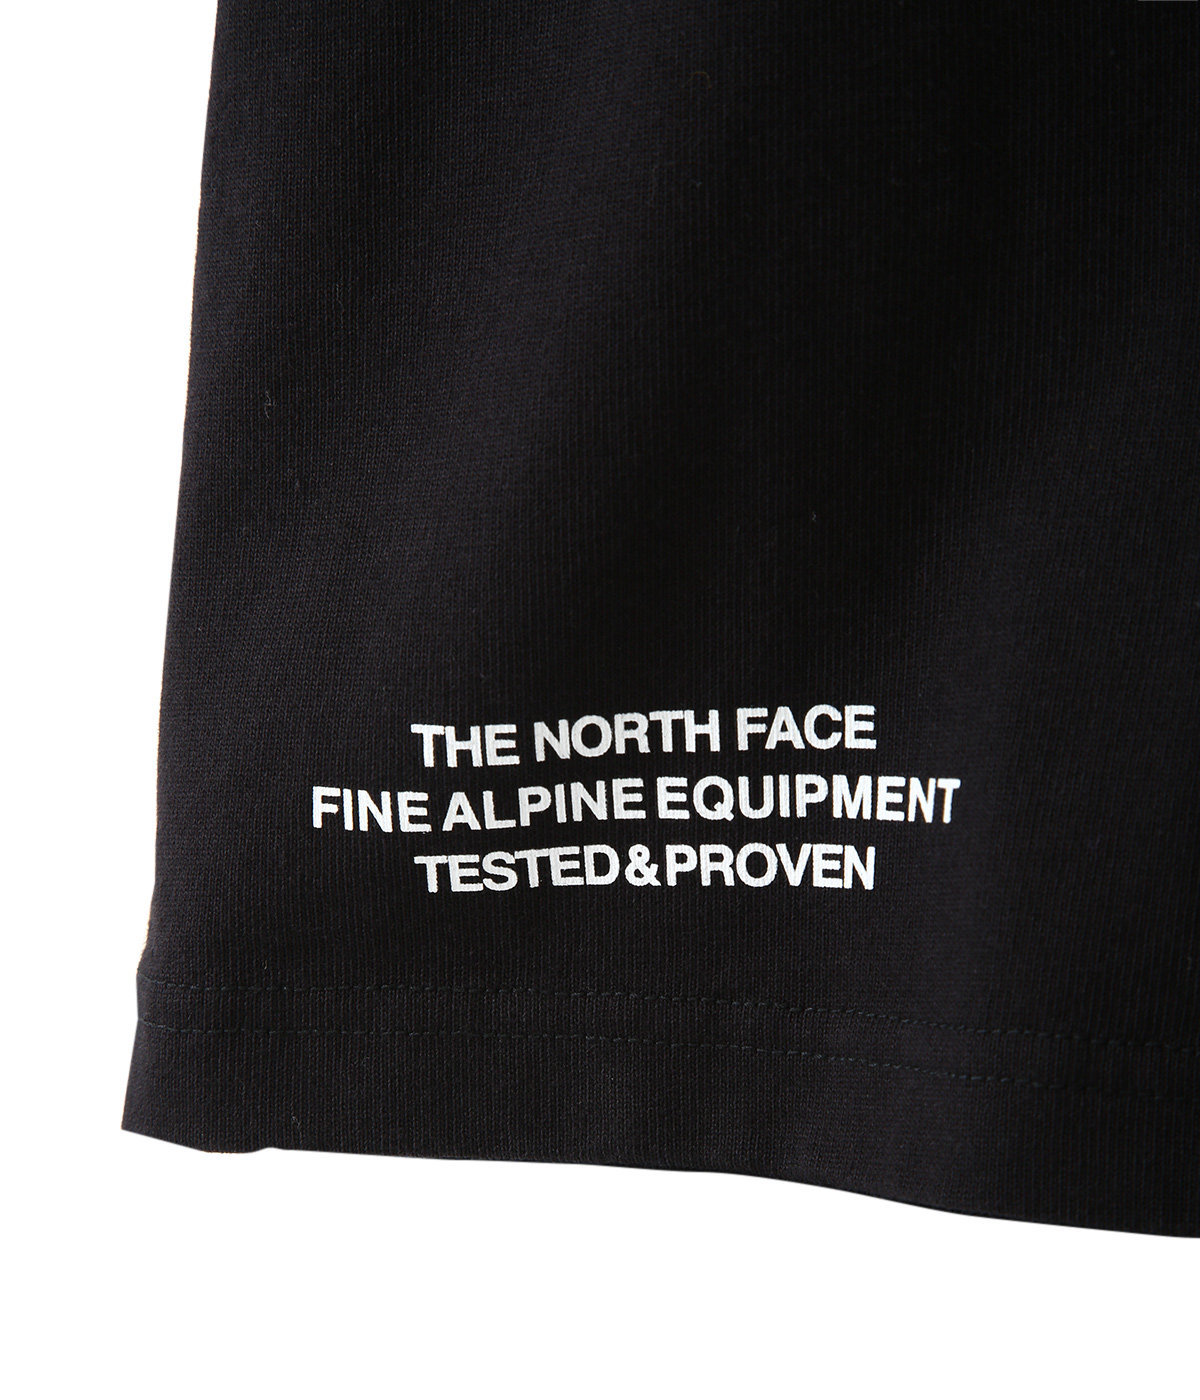 S/S Tested Proven Tee